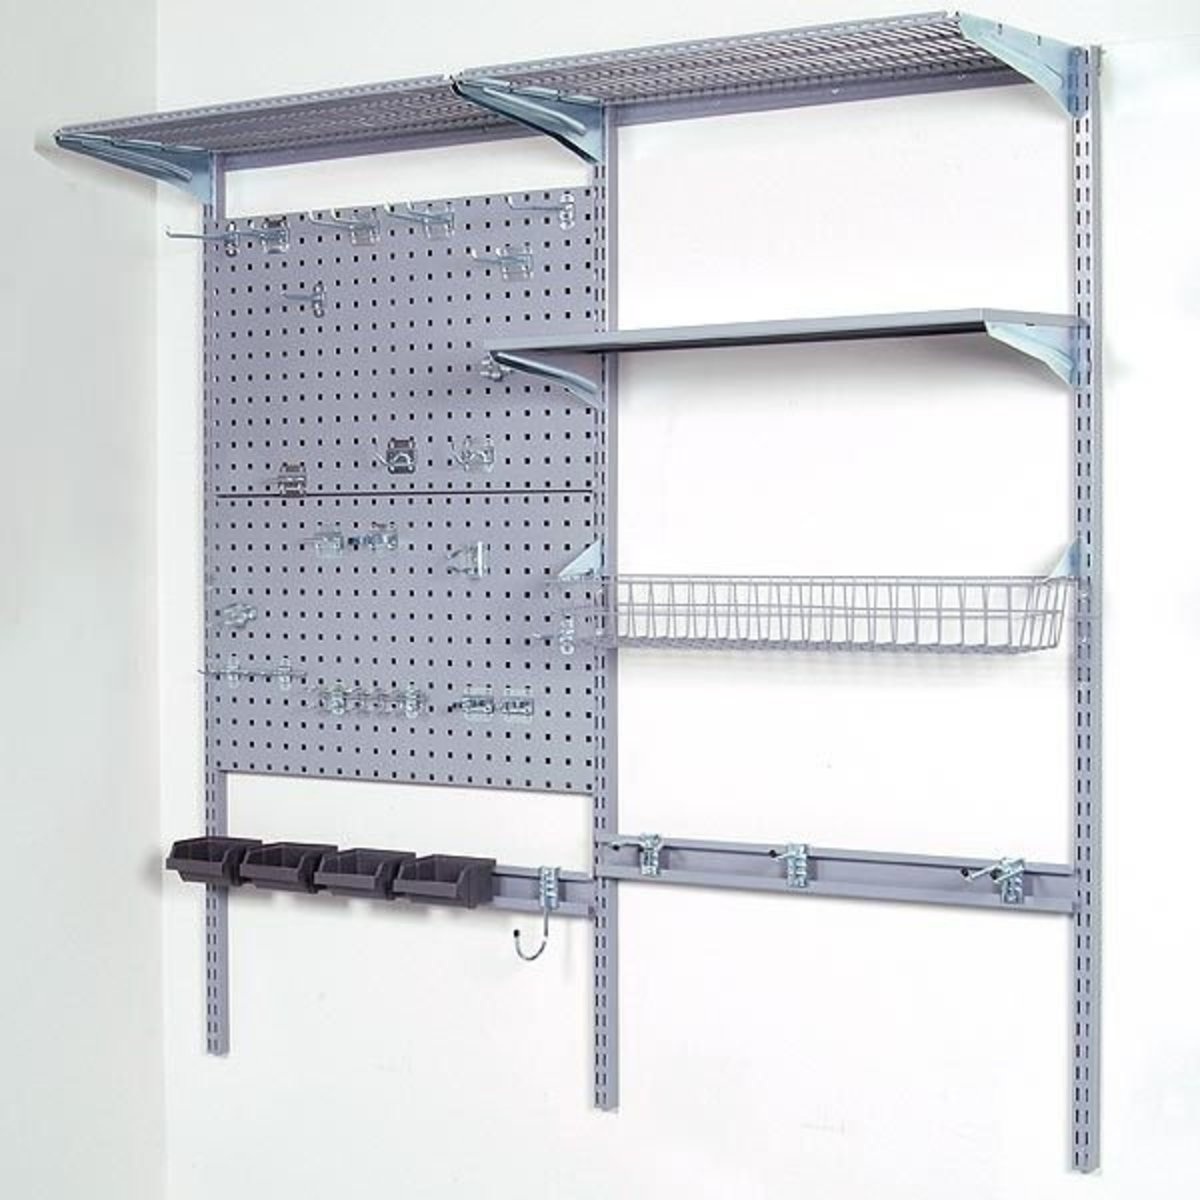 Triton Products Storability Garage Wall Storage System Model 1740